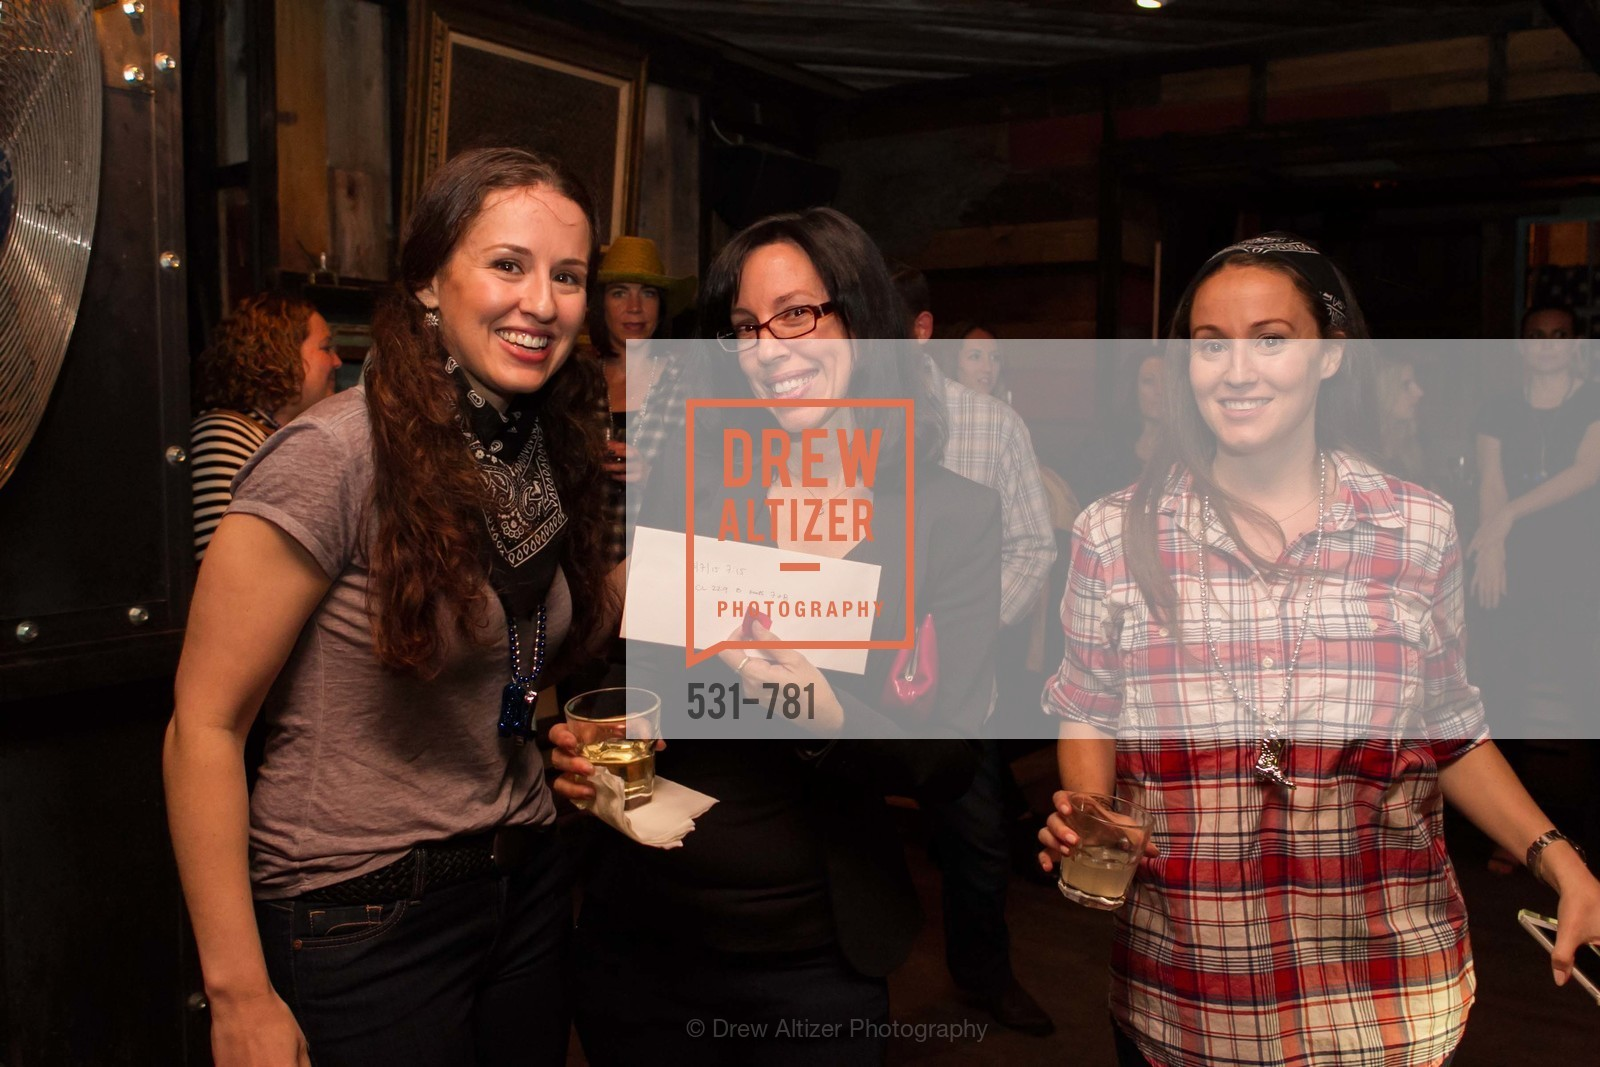 Shoshana Ungerleider, Ariel Kelley, Rooms That ROCK FOR CHEMO Fundraiser, US, April 1st, 2015,Drew Altizer, Drew Altizer Photography, full-service agency, private events, San Francisco photographer, photographer california